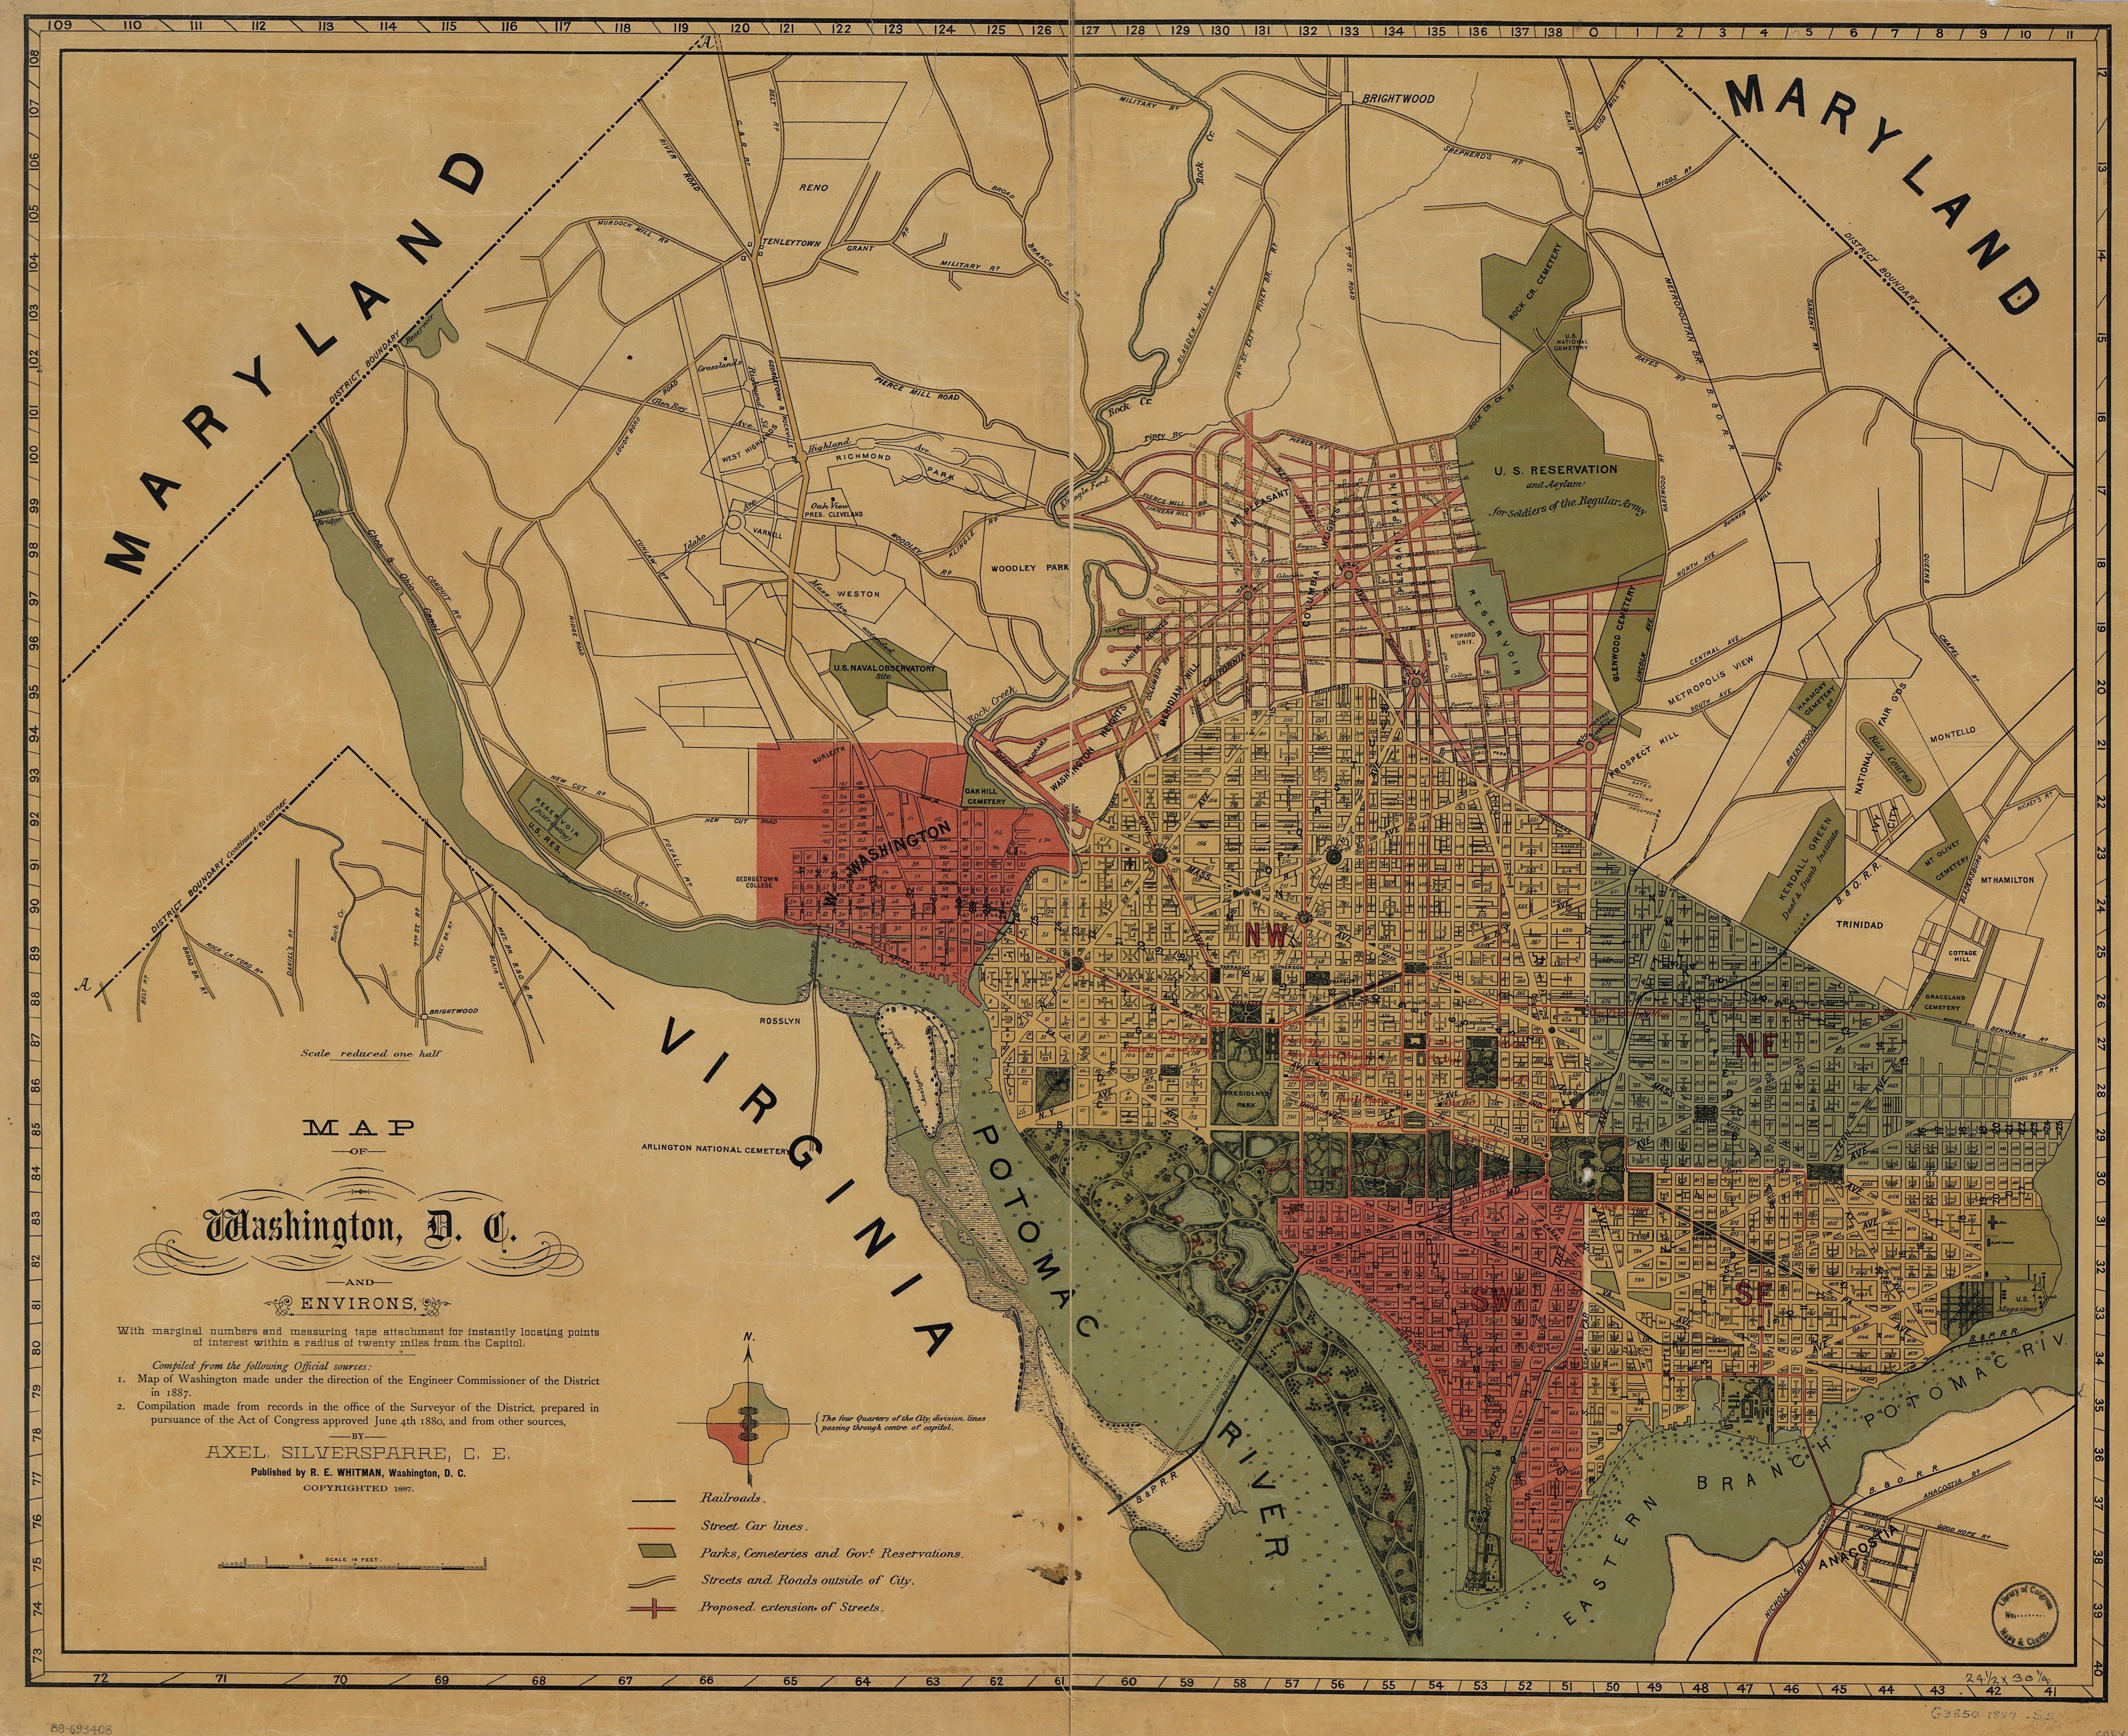 1887 map of Washington D C and environs with marginal numbers